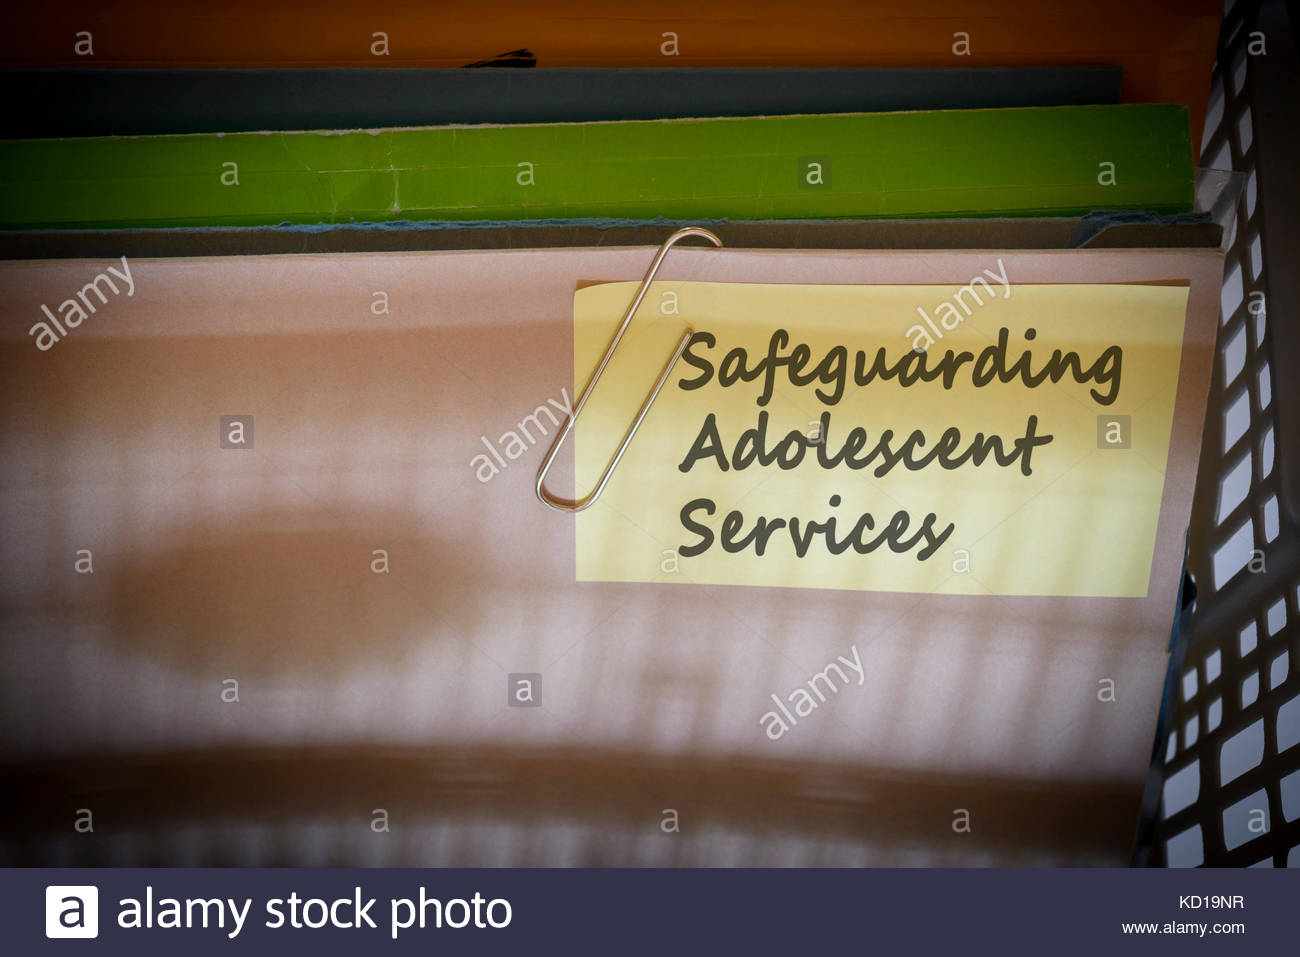 Safeguarding Adolescent Services written on document folder, Dorset, England. - Stock Image